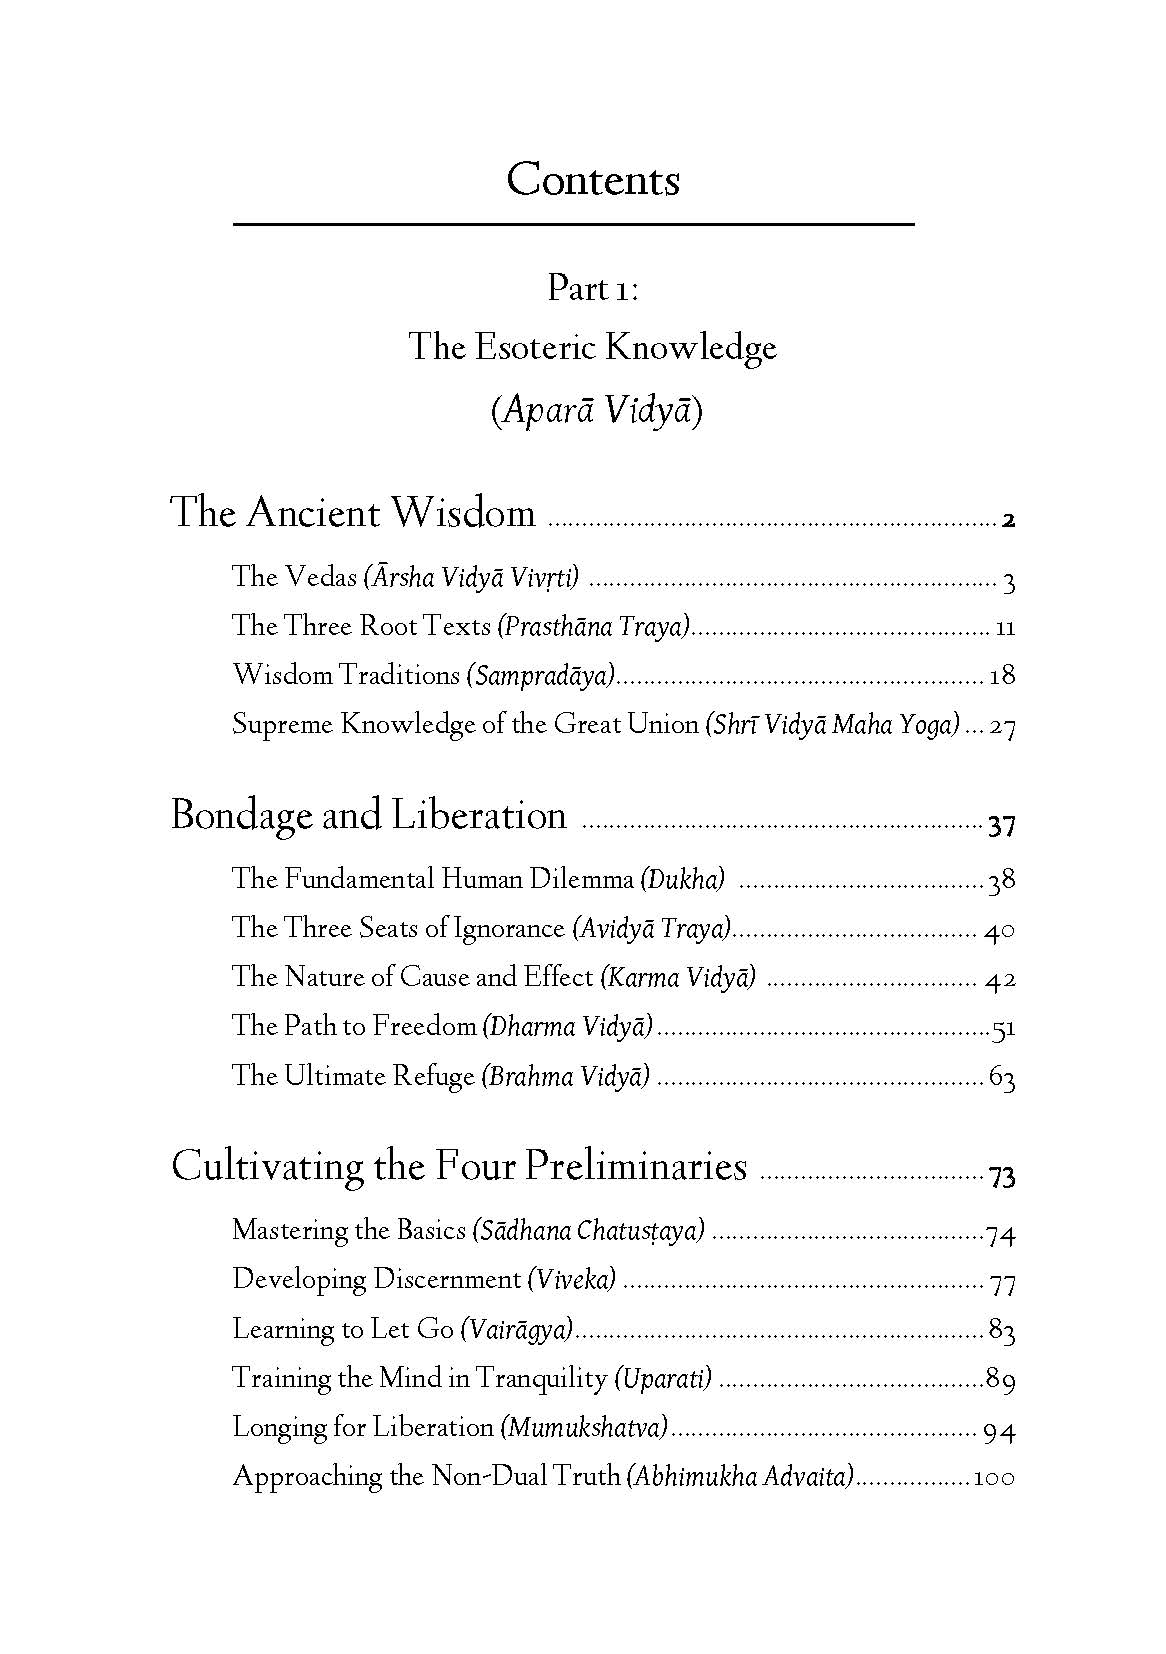 The Way of Oneness - PDF Download_Page_010